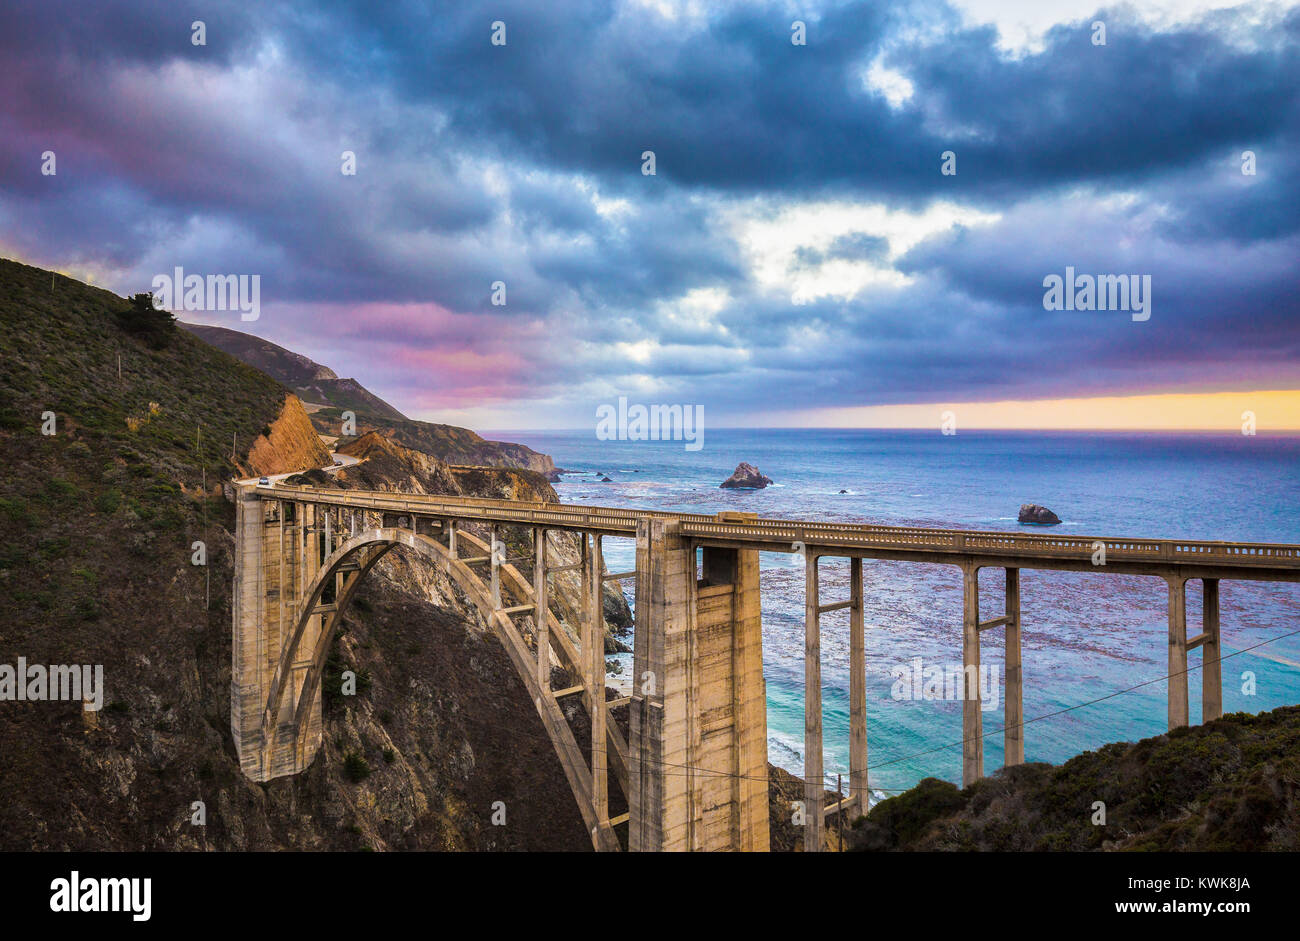 Scenic view of historic Bixby Creek Bridge along world famous Highway 1 in evening twilight, Big Sur, California, - Stock Image